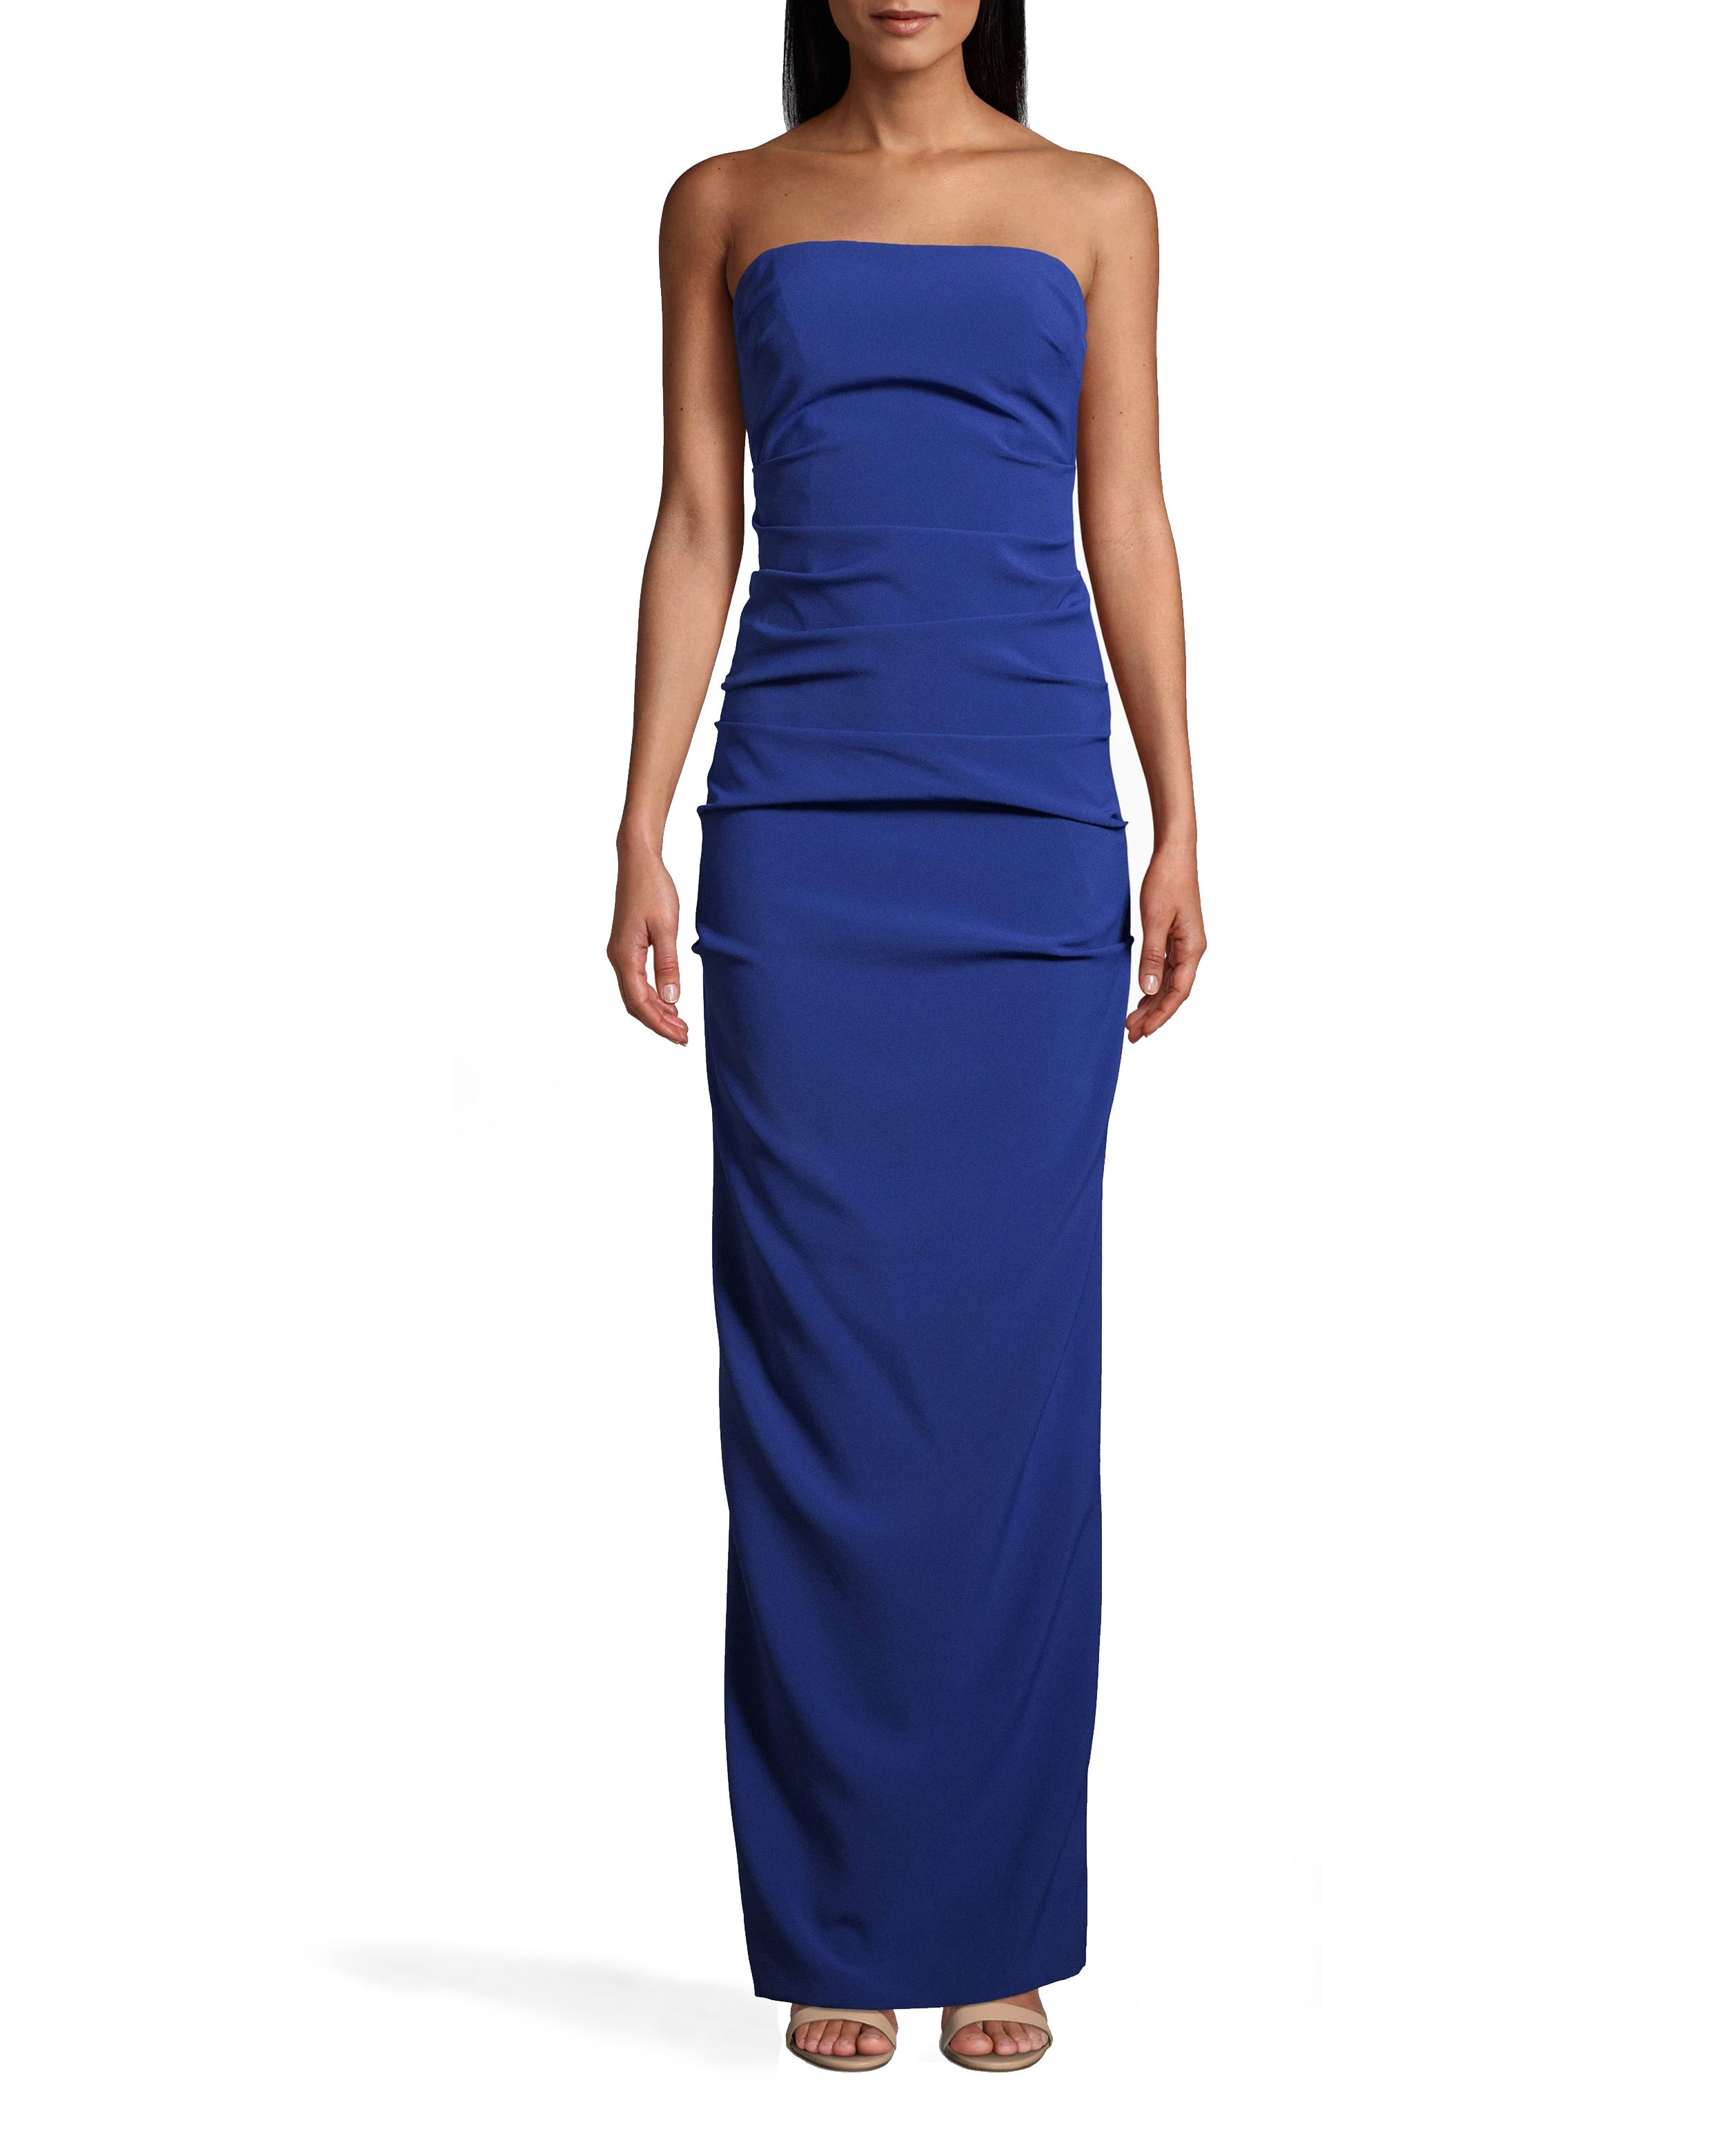 nicole miller techy crepe tuck strapless gown in blue | polyester/elastane | size 2